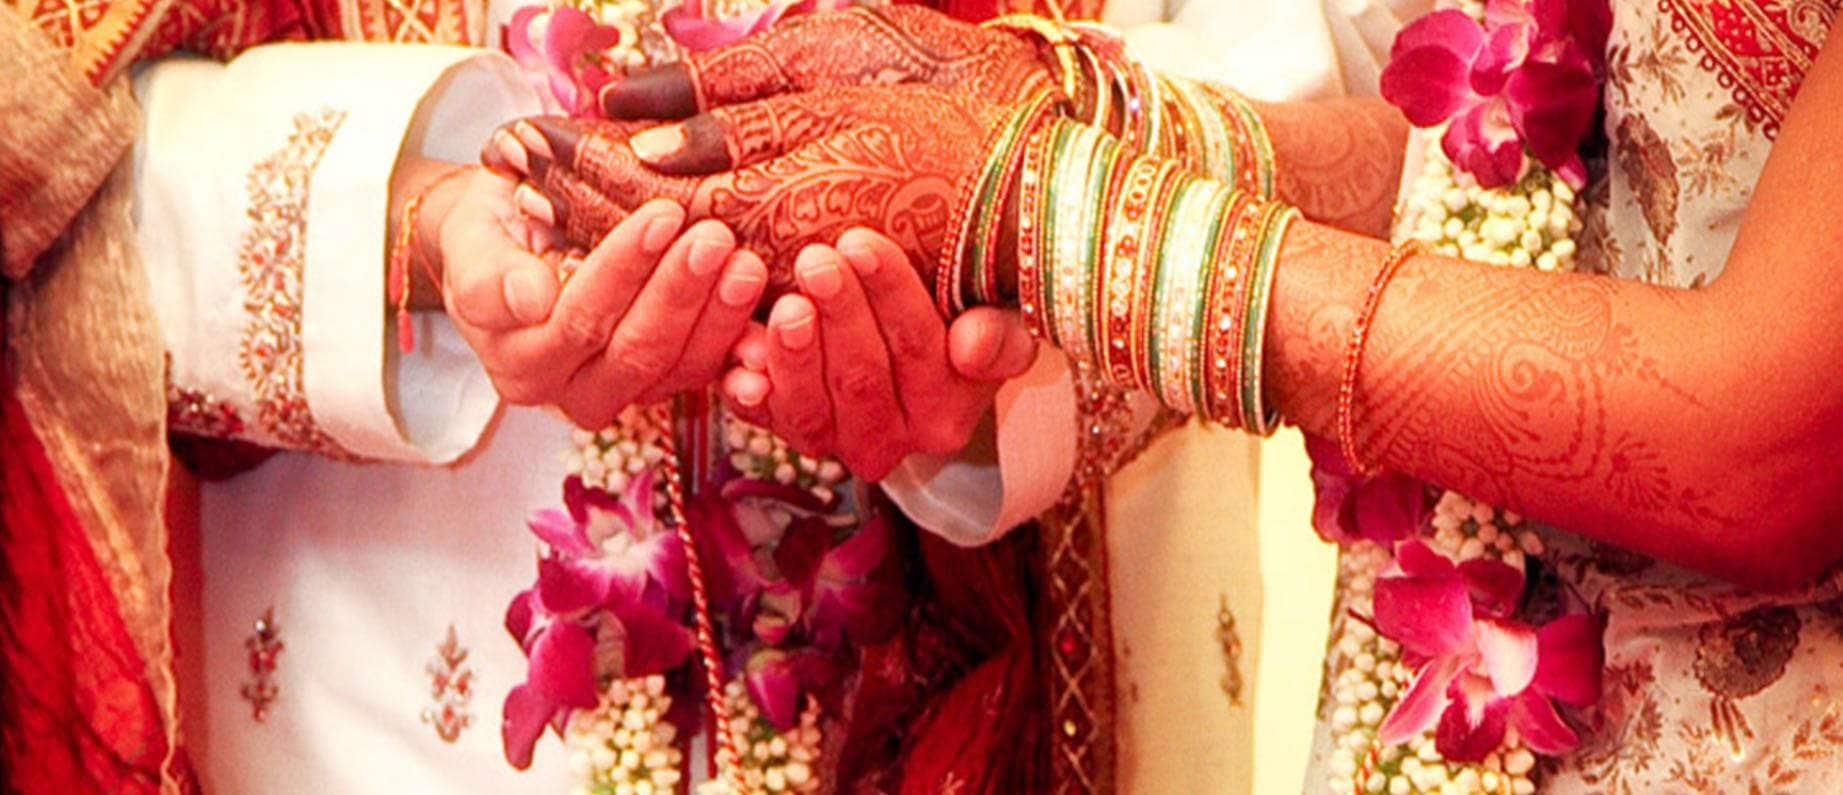 Top 20 Marriage Bureau in Ranchi - Best Tamil Matrimony - Justdial